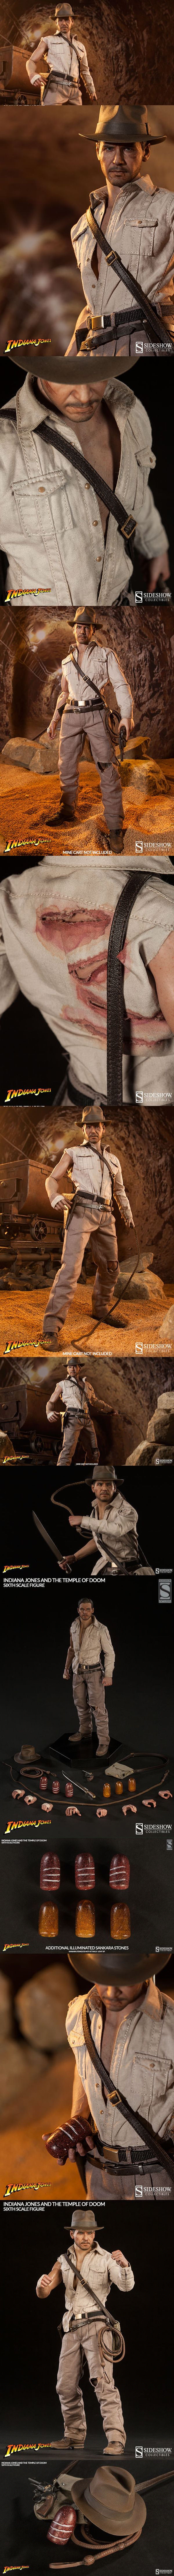 The New Indiana Jones Temple Of Doom Sixth Scale Figure By Sideshow Is So So Pretty I'm already in love with the new Indiana Jones Temple of Doom Sixth Scale Figure. First of all, the face. You get all kinds of different accessories and different hands to use those accessories.  I know, I'm fangirling. I honestly can't help it Read more: http://nerdapproved.com/approved-products/the-new-indiana-jones-temple-of-doom-sixth-scale-figure-by-sideshow-is-so-so-pretty/#J4KtjBsZQf7g7TXj.99